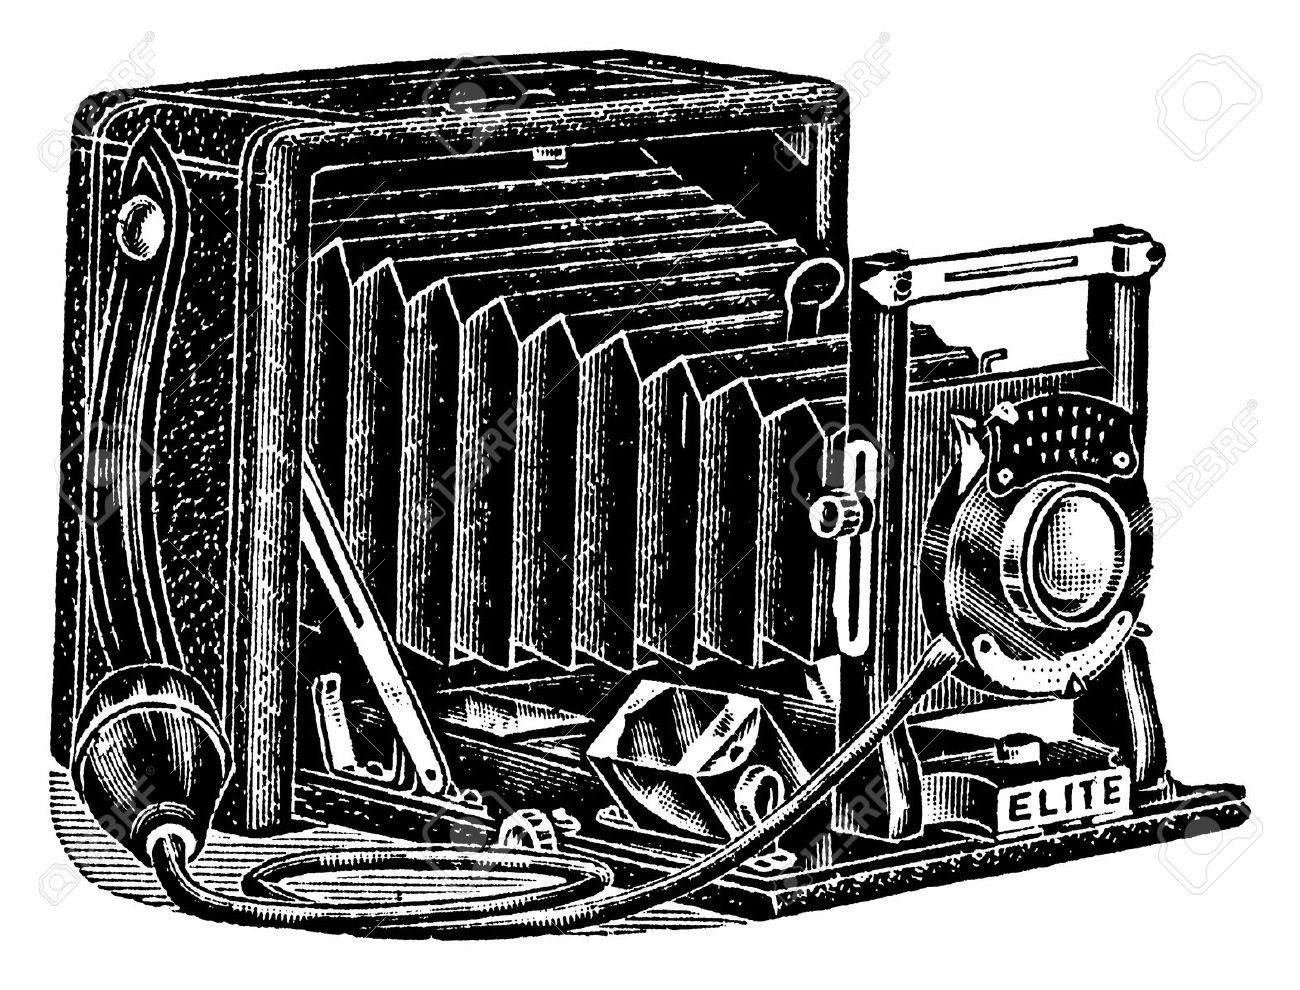 An Antique Engraved Illustration Of A Camera With Bellows.